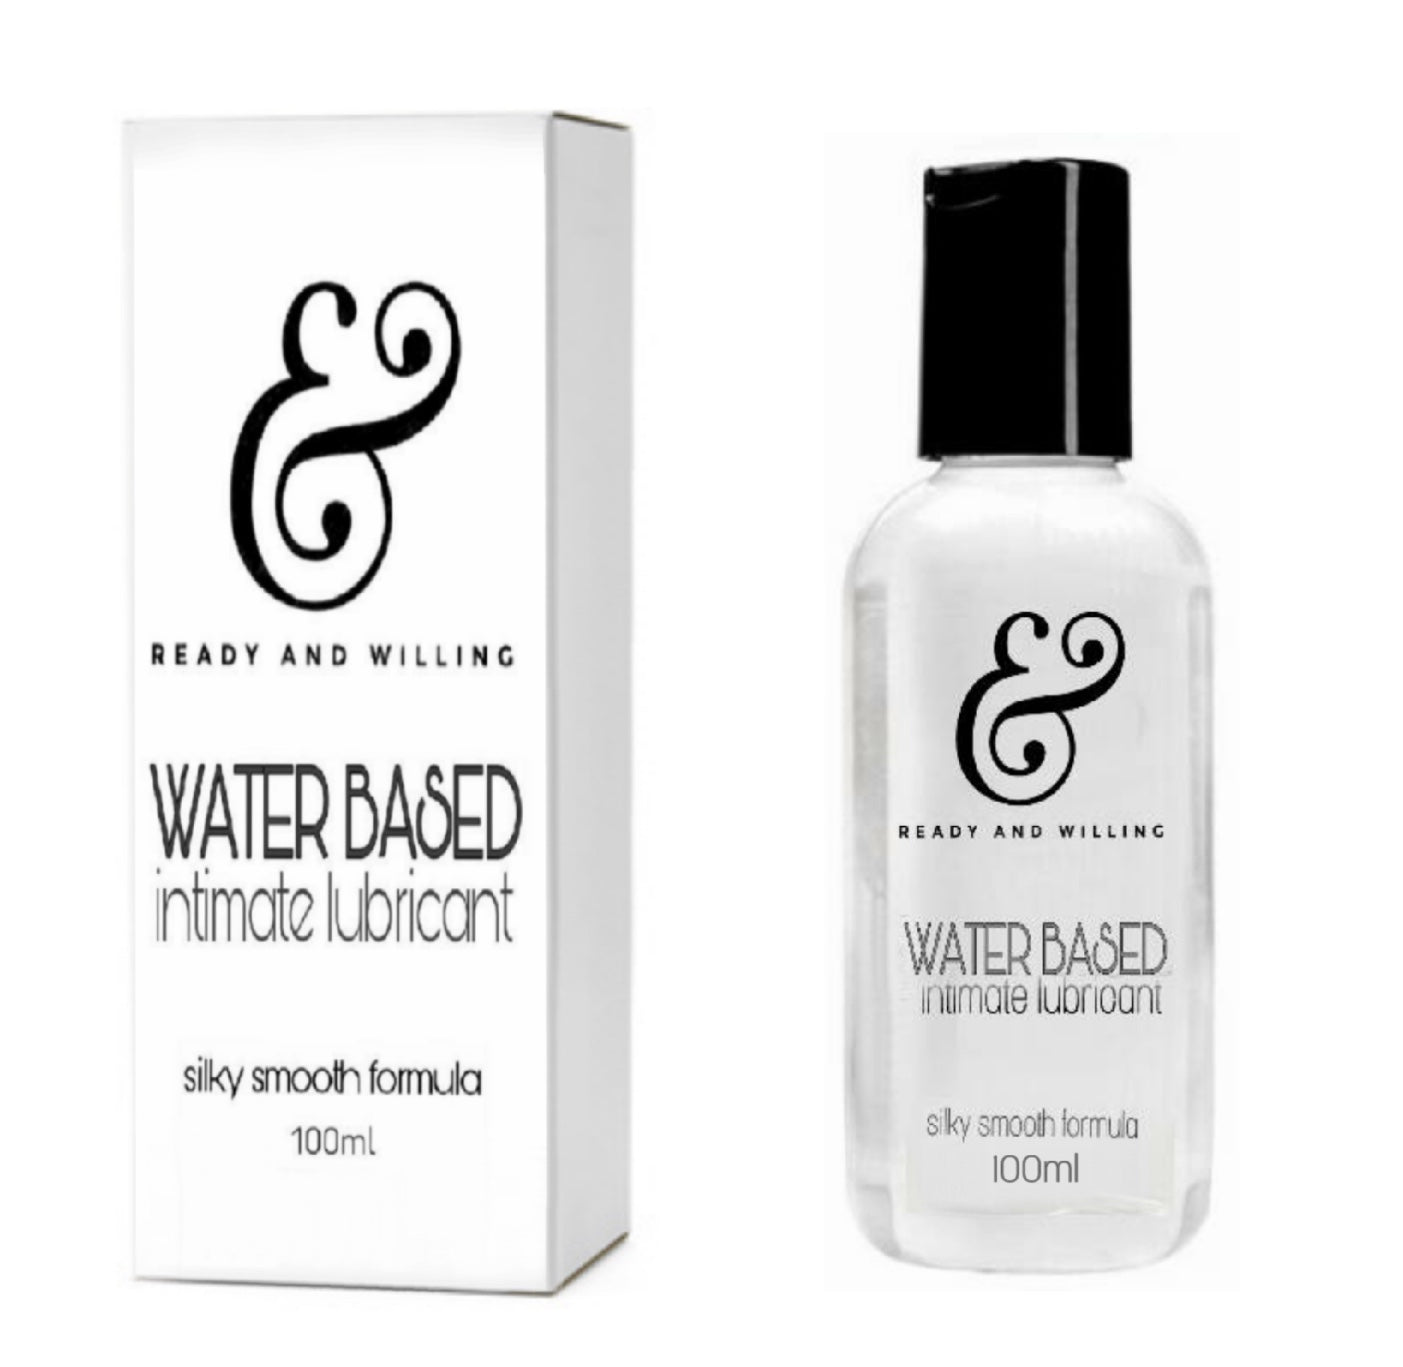 Premium Water Based Lubricant 100mL or 3.4 fluid ounces - Silky Smooth Formula